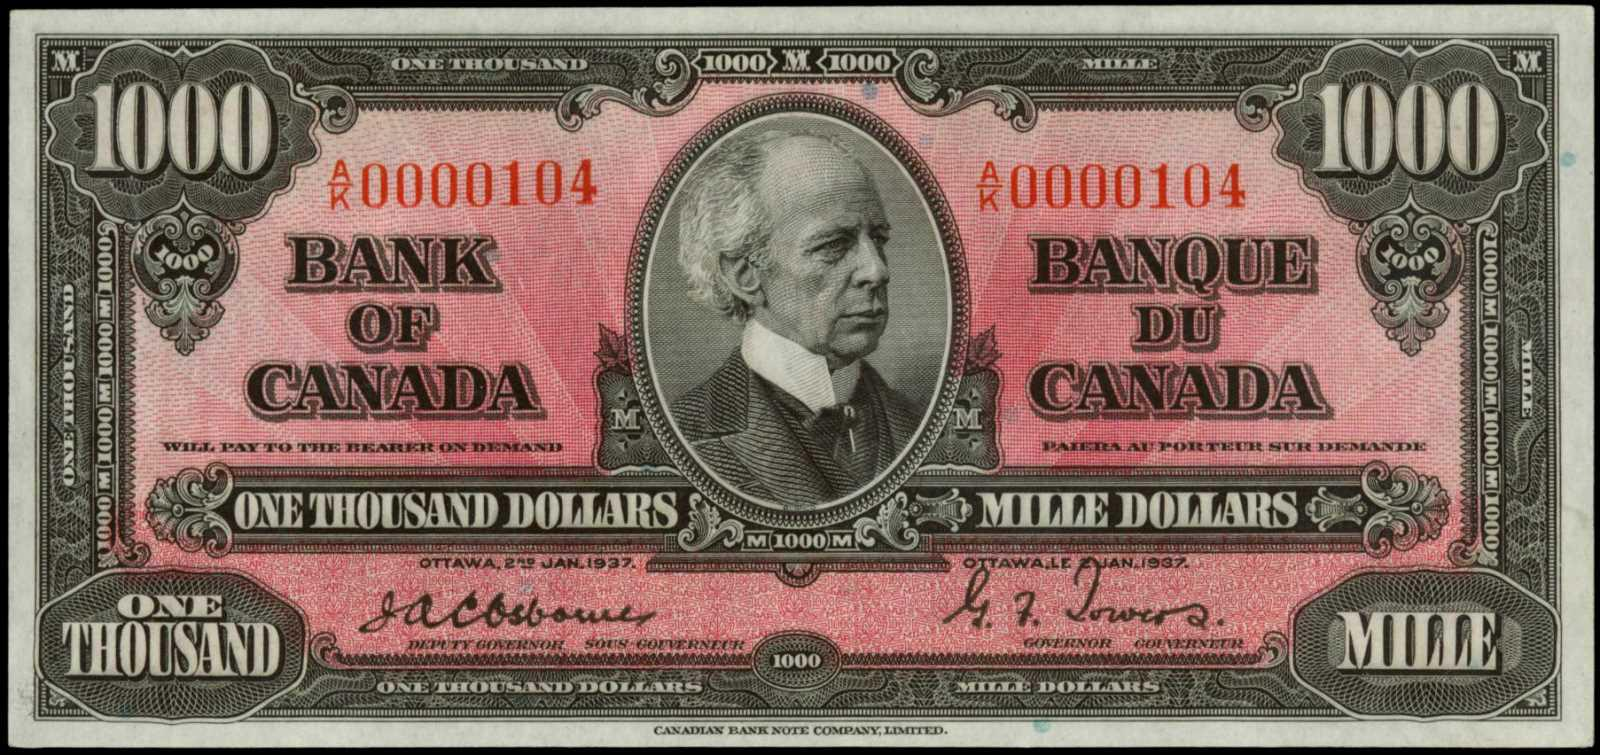 Value of 2nd Jan  1937 $1000 Bill from The Bank of Canada